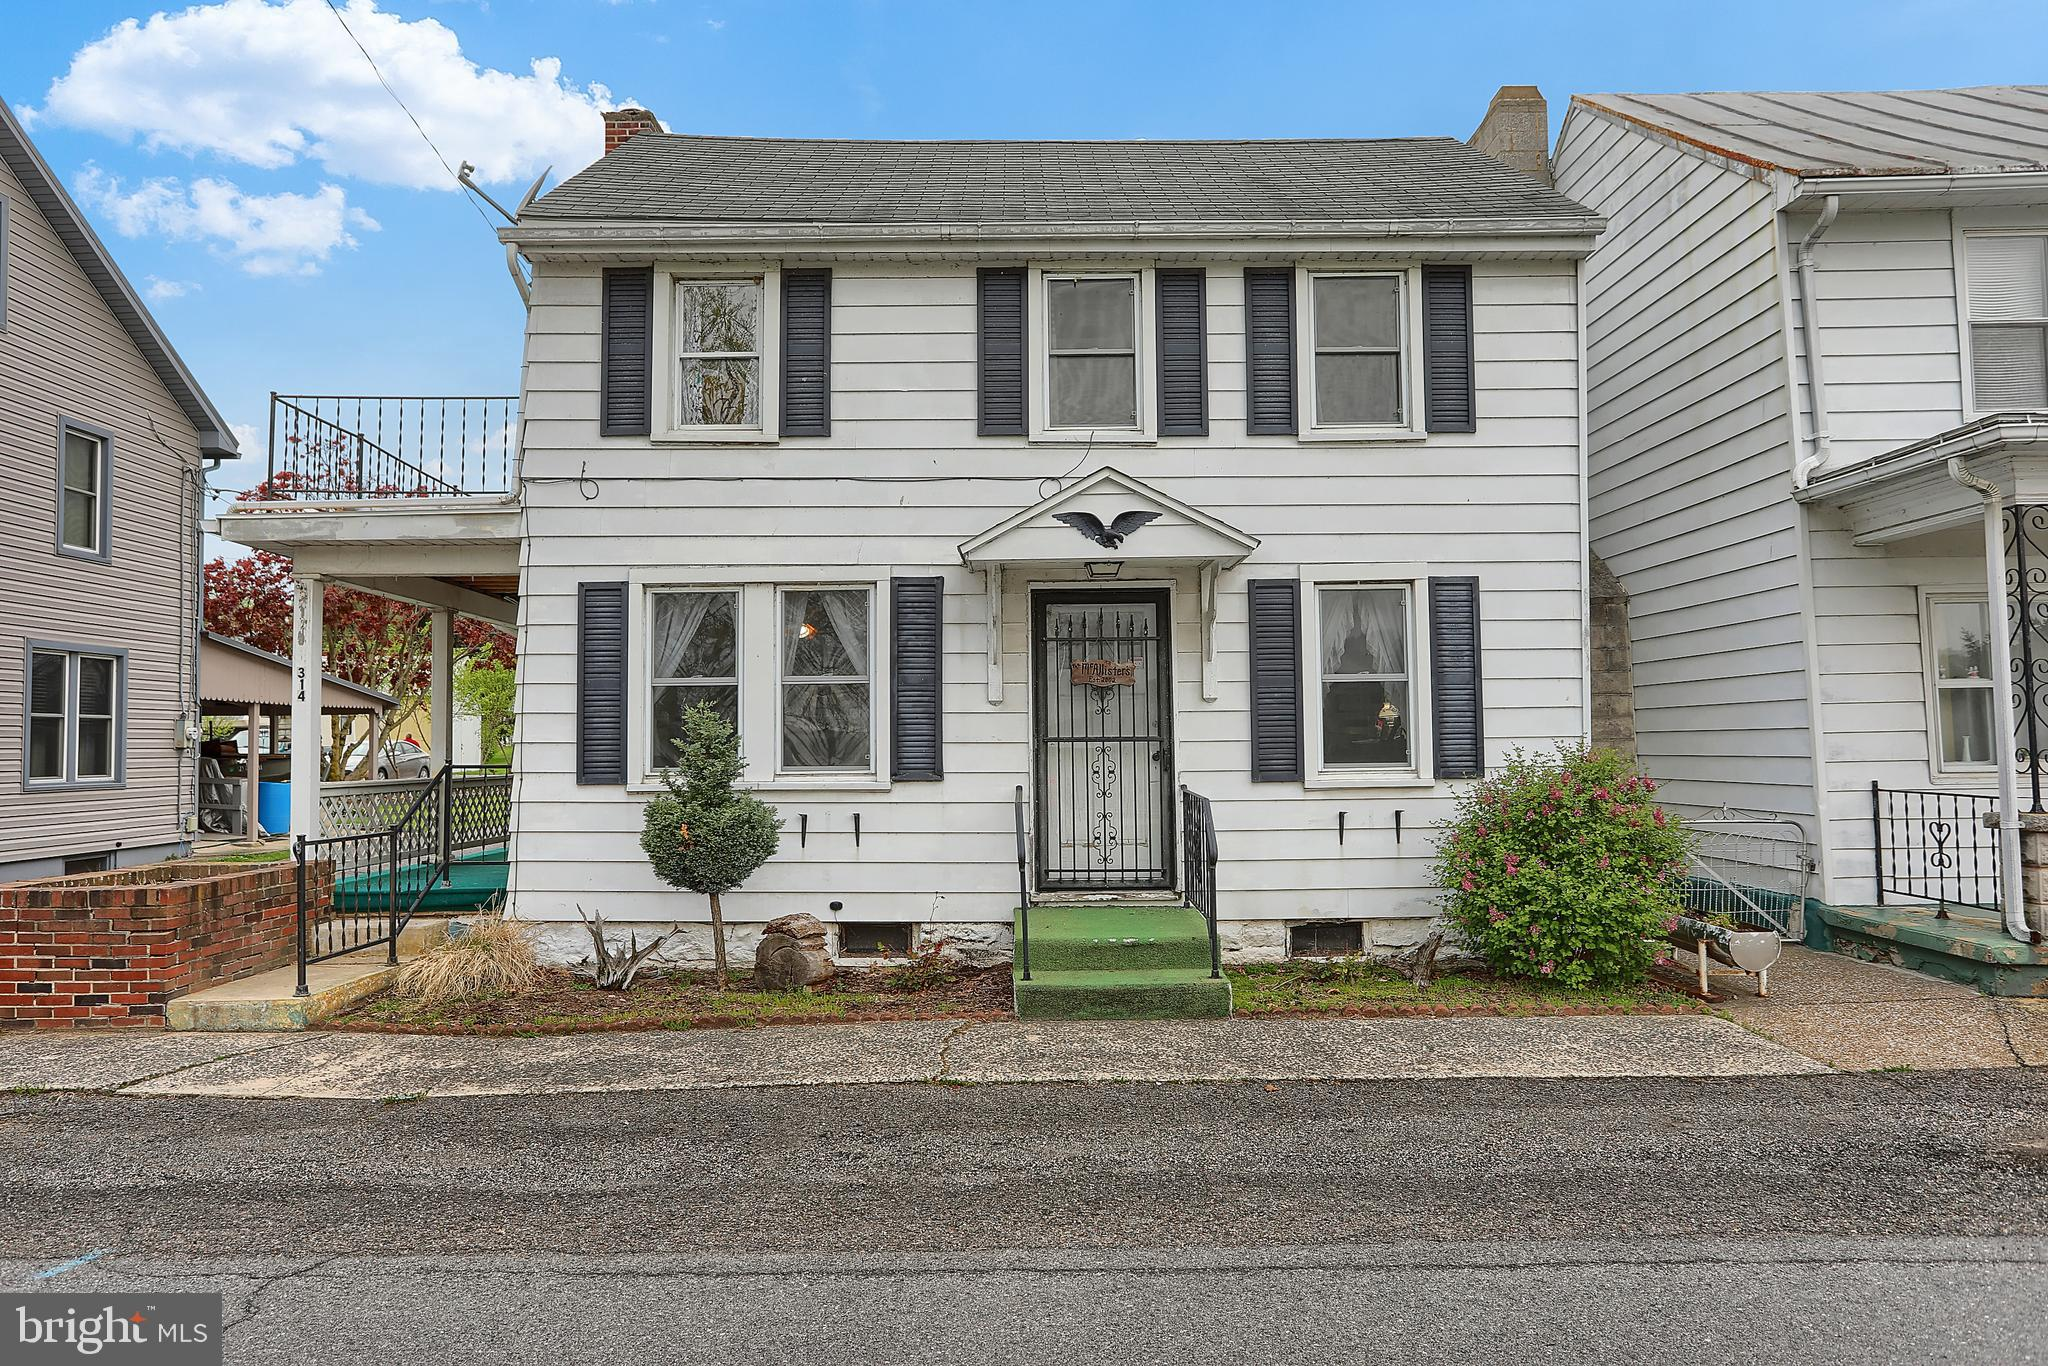 314 S FRONT STREET, LIVERPOOL, PA 17045